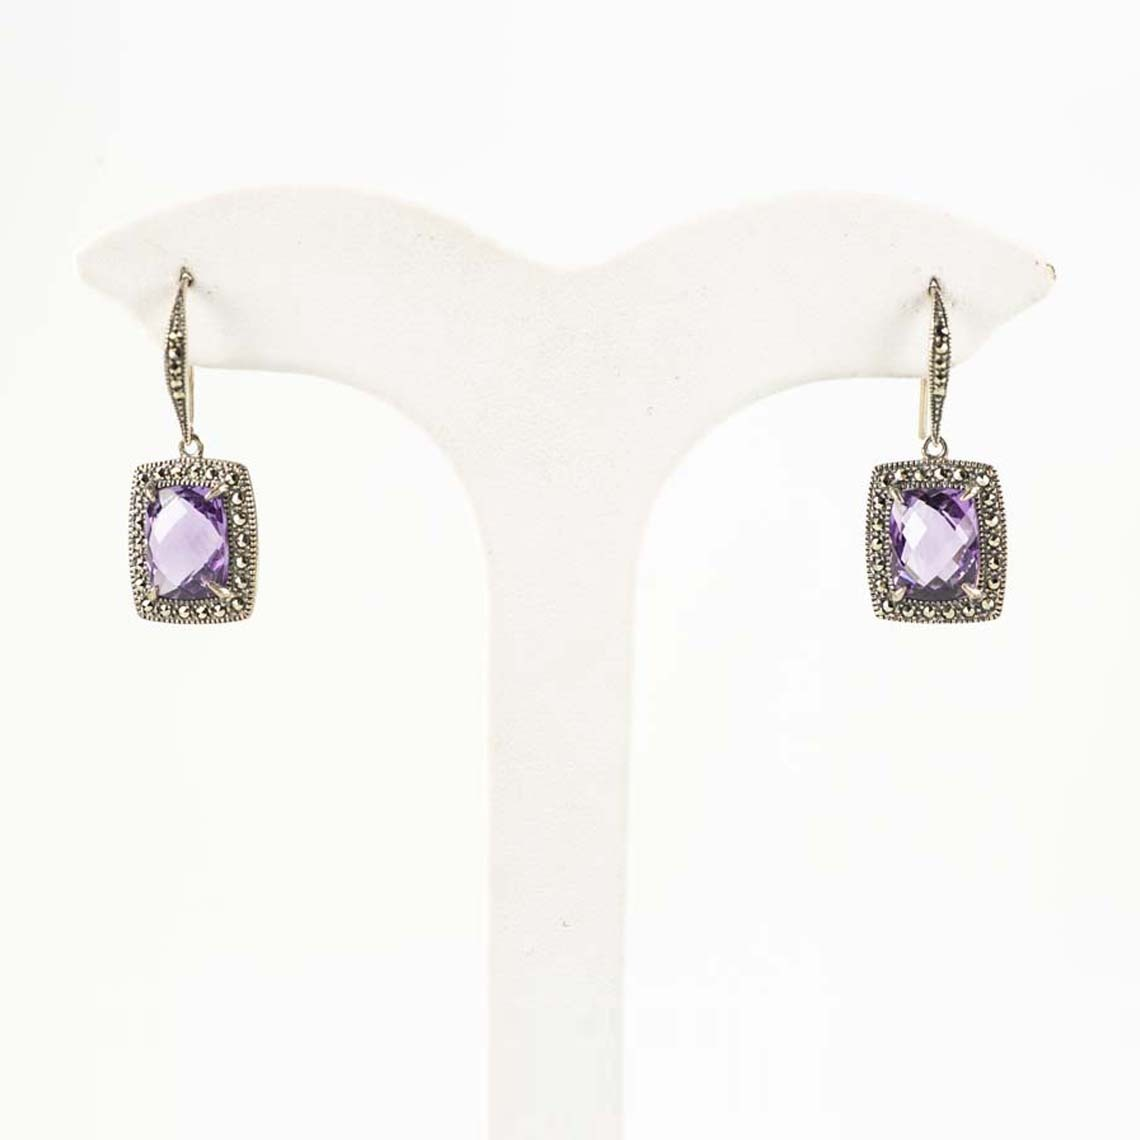 Amethyst and marcasite earrings